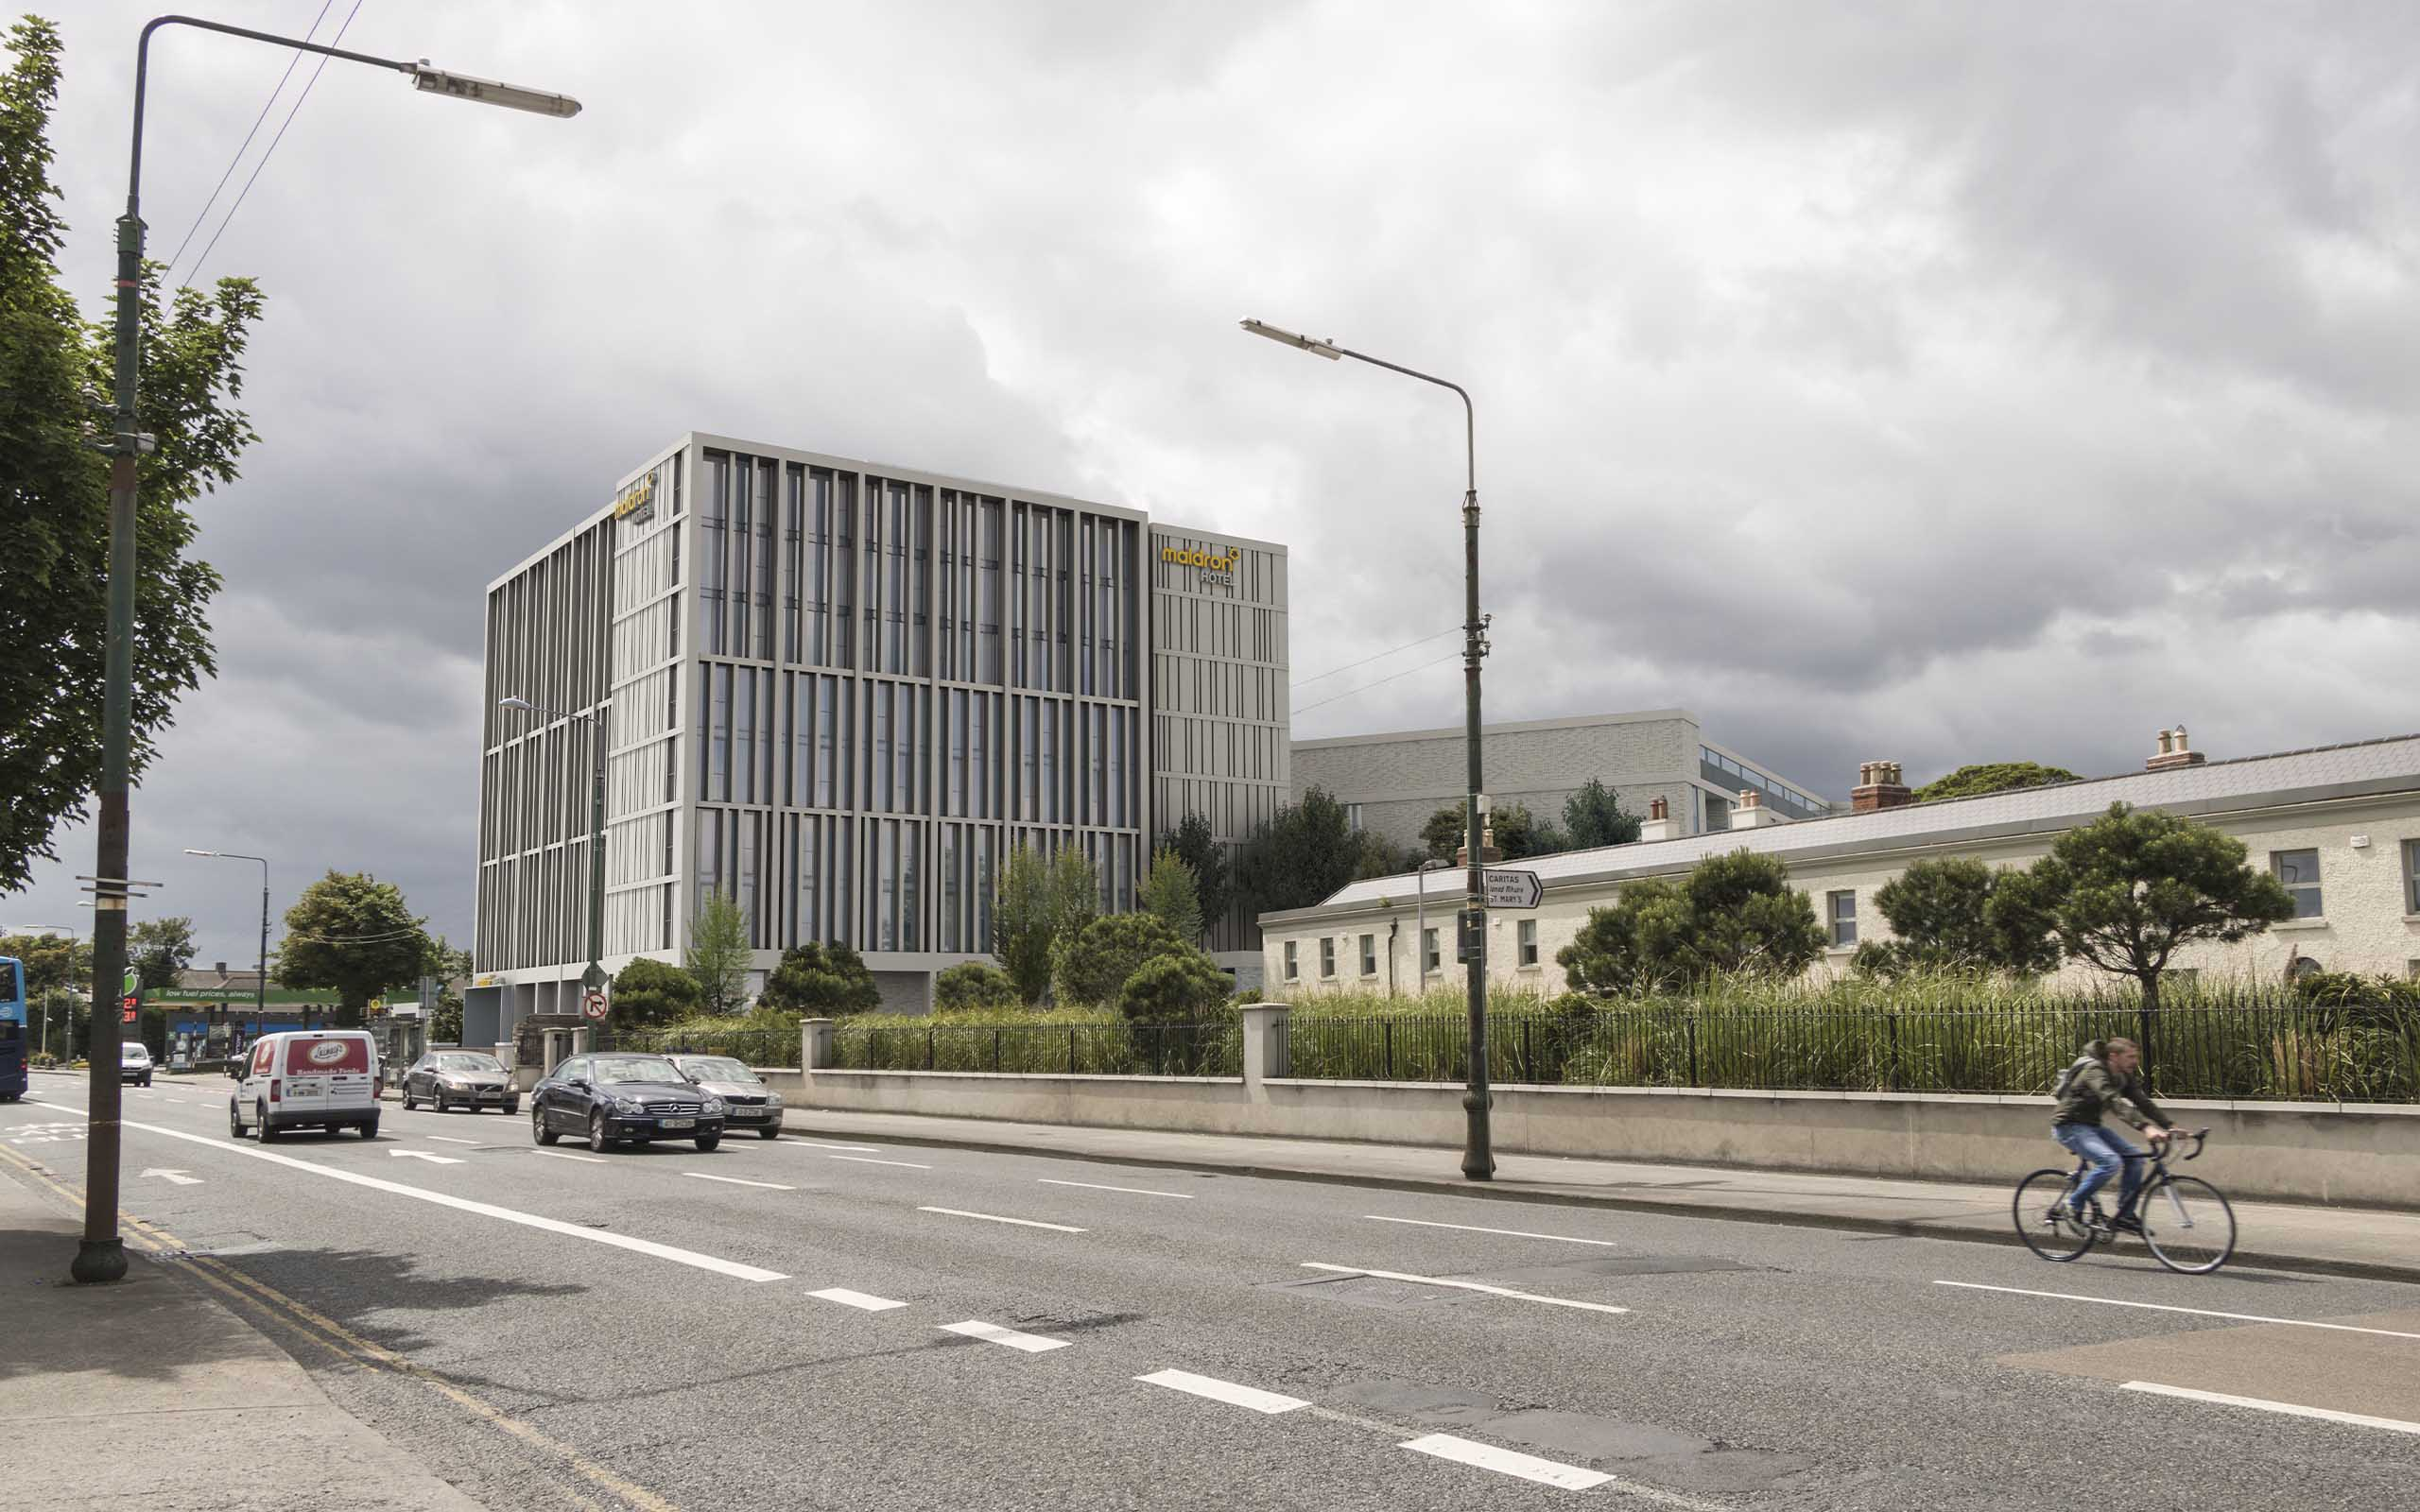 Verified view of new Maldron Hotel on the former site of Tara Towers Hotel in Dublin 4.